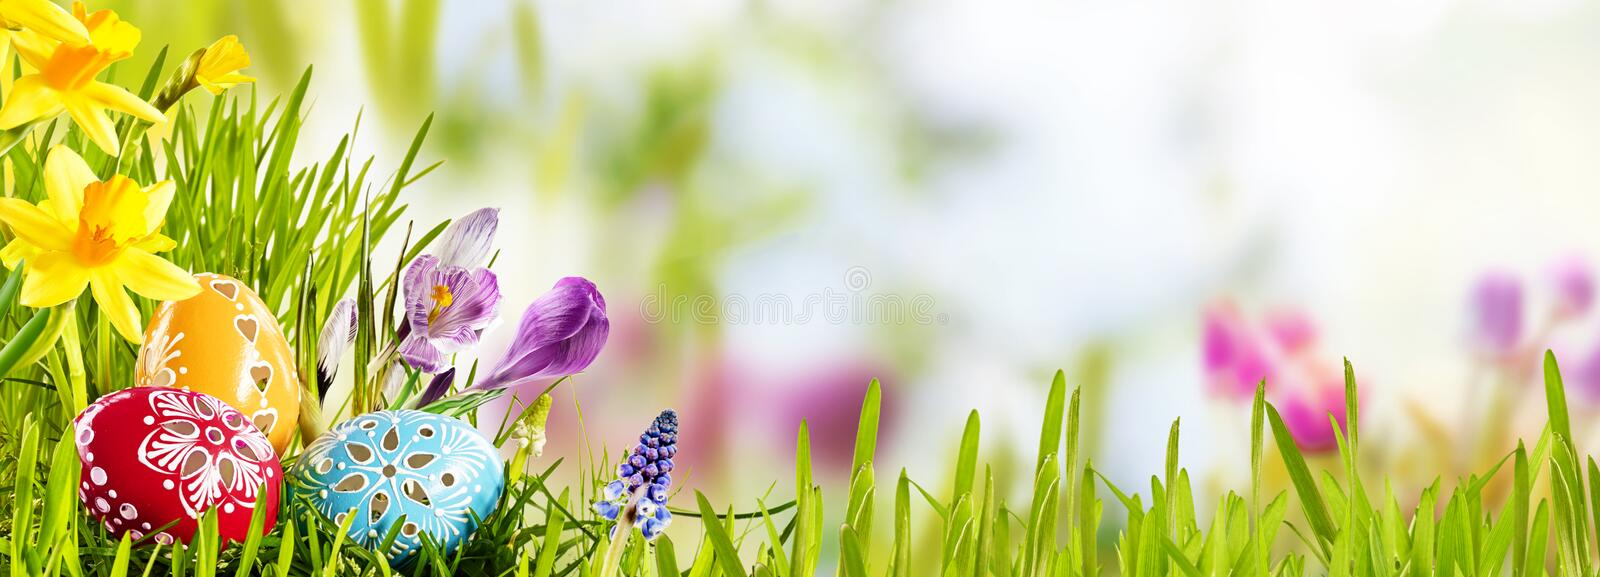 Horizontal Easter banner with eggs in a meadow. Horizontal Easter banner with eggs in a fresh green spring meadow nestling in the grass with colorful yellow royalty free stock photography